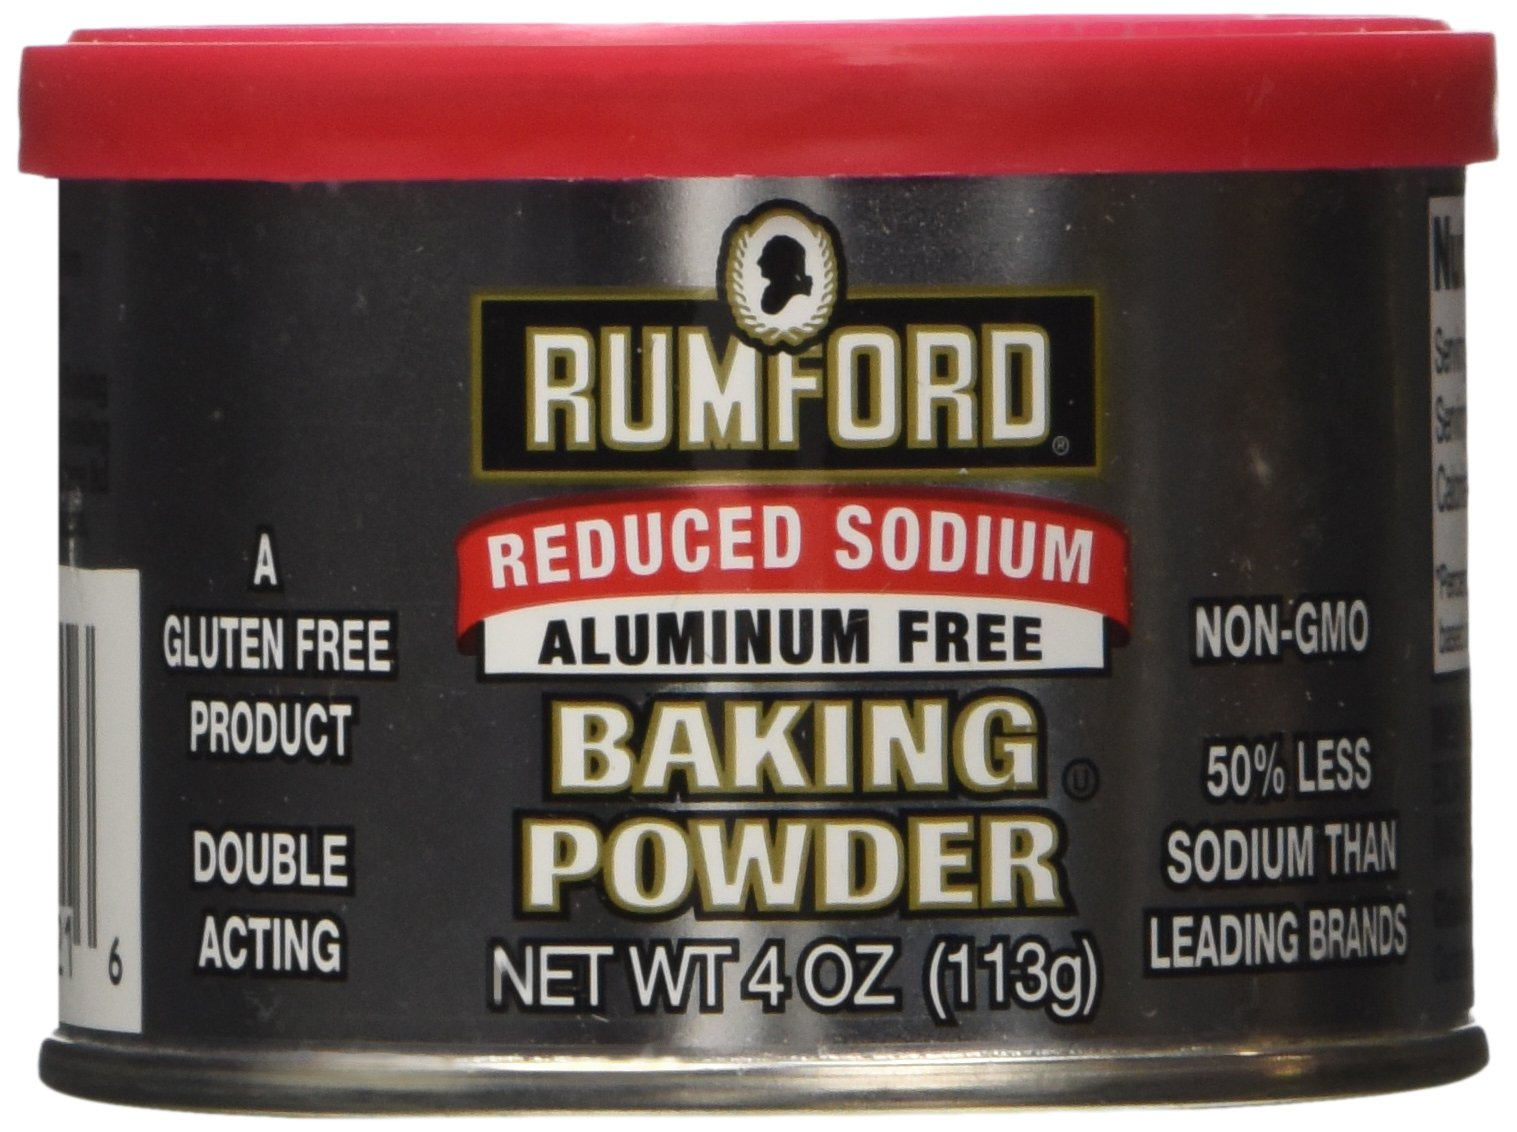 Rumford Baking Powder Reduced Sodium 4 Oz, Pack of 2